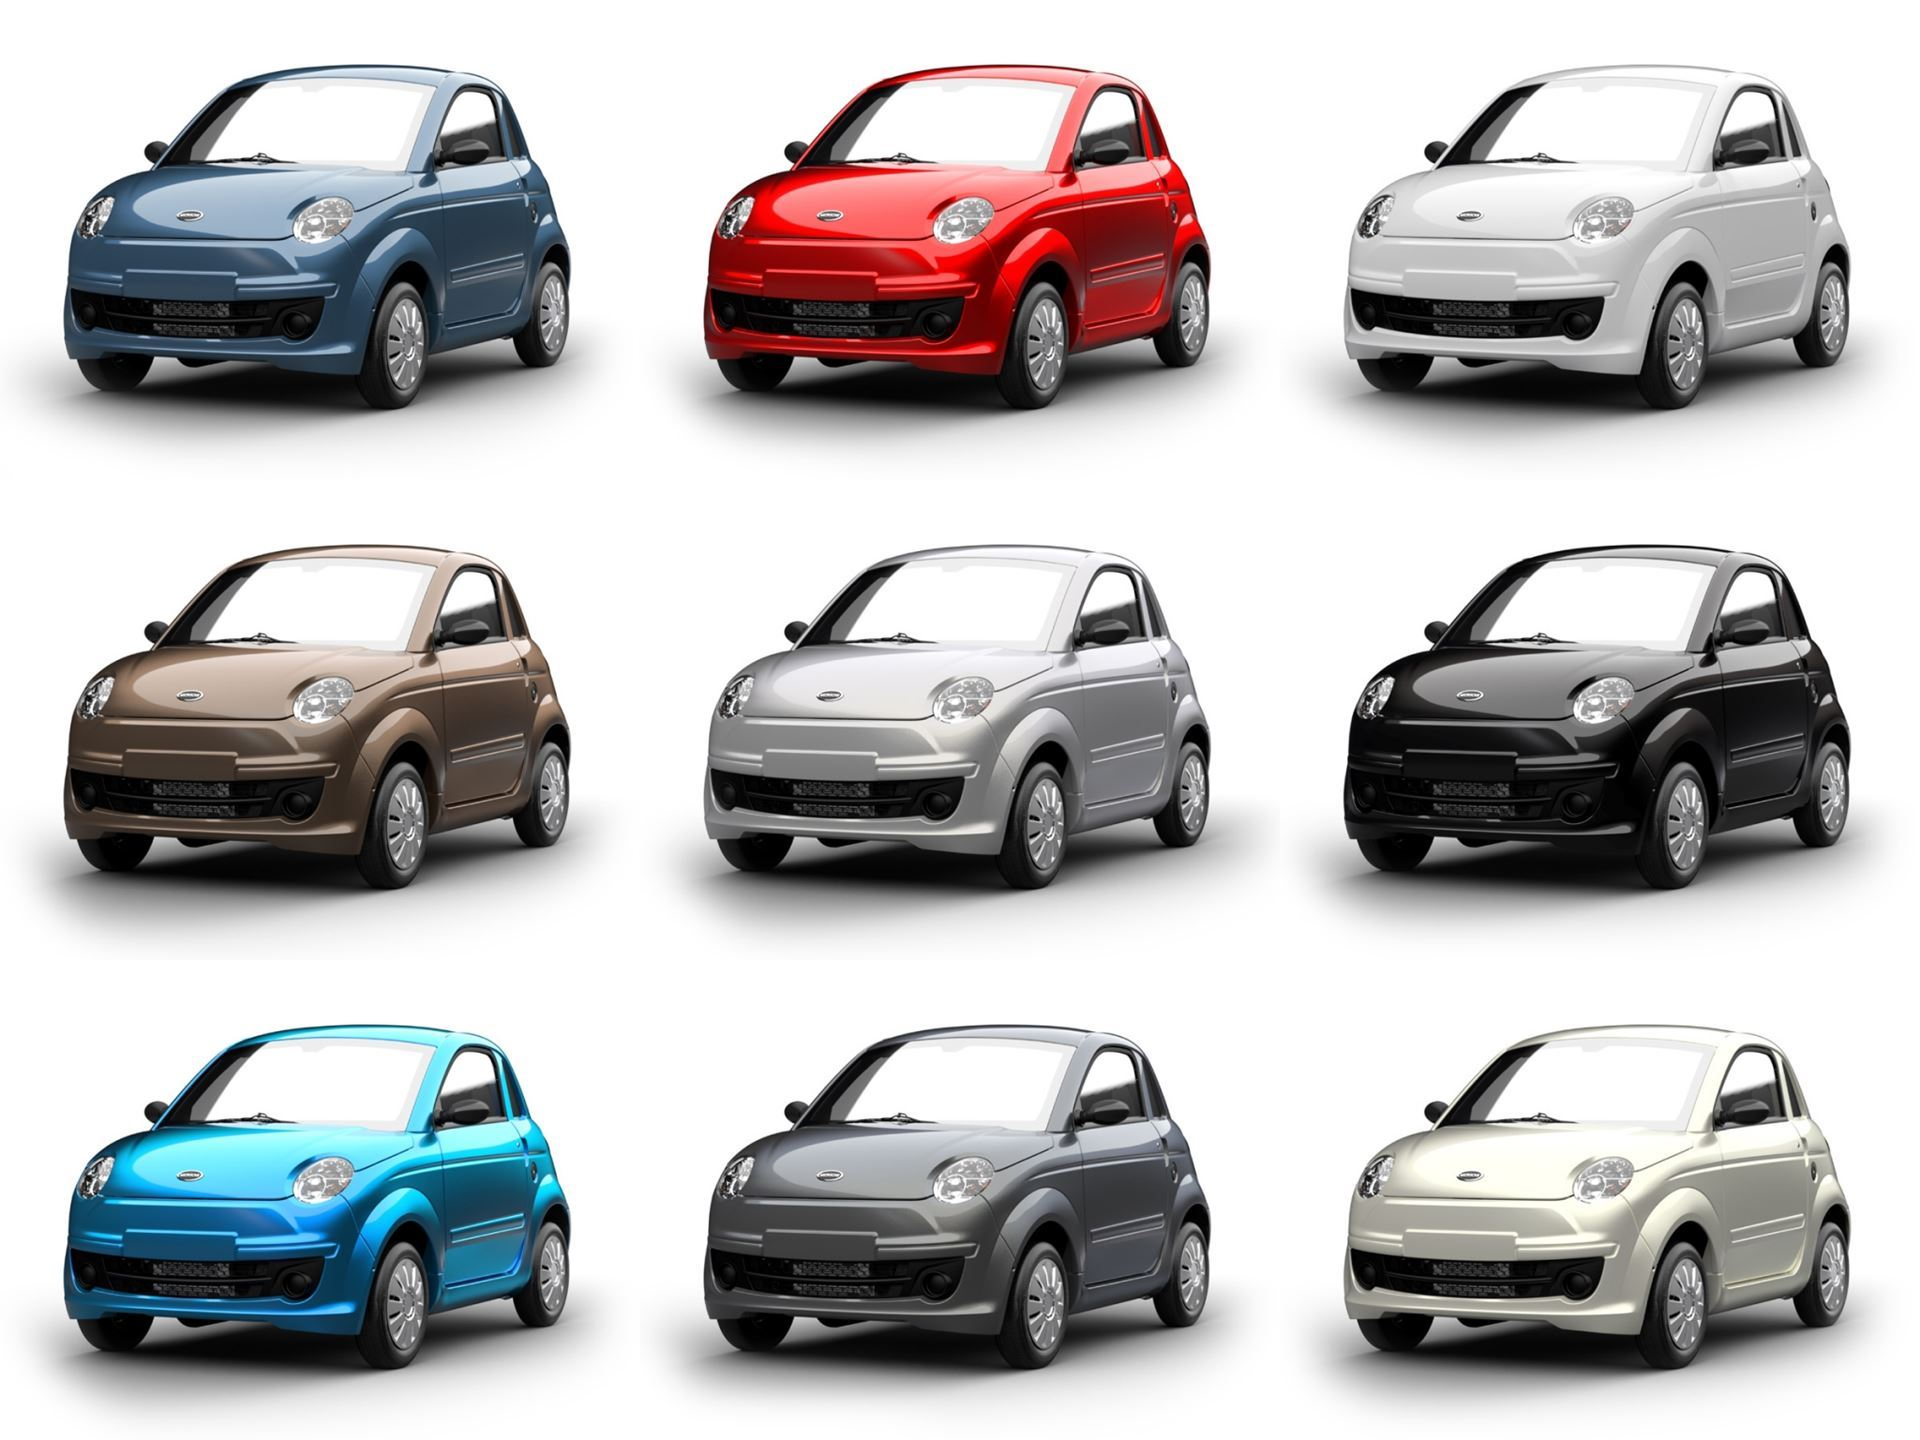 Immagine per la categoria MICROCAR DISPONIBILI PER RICAMBI